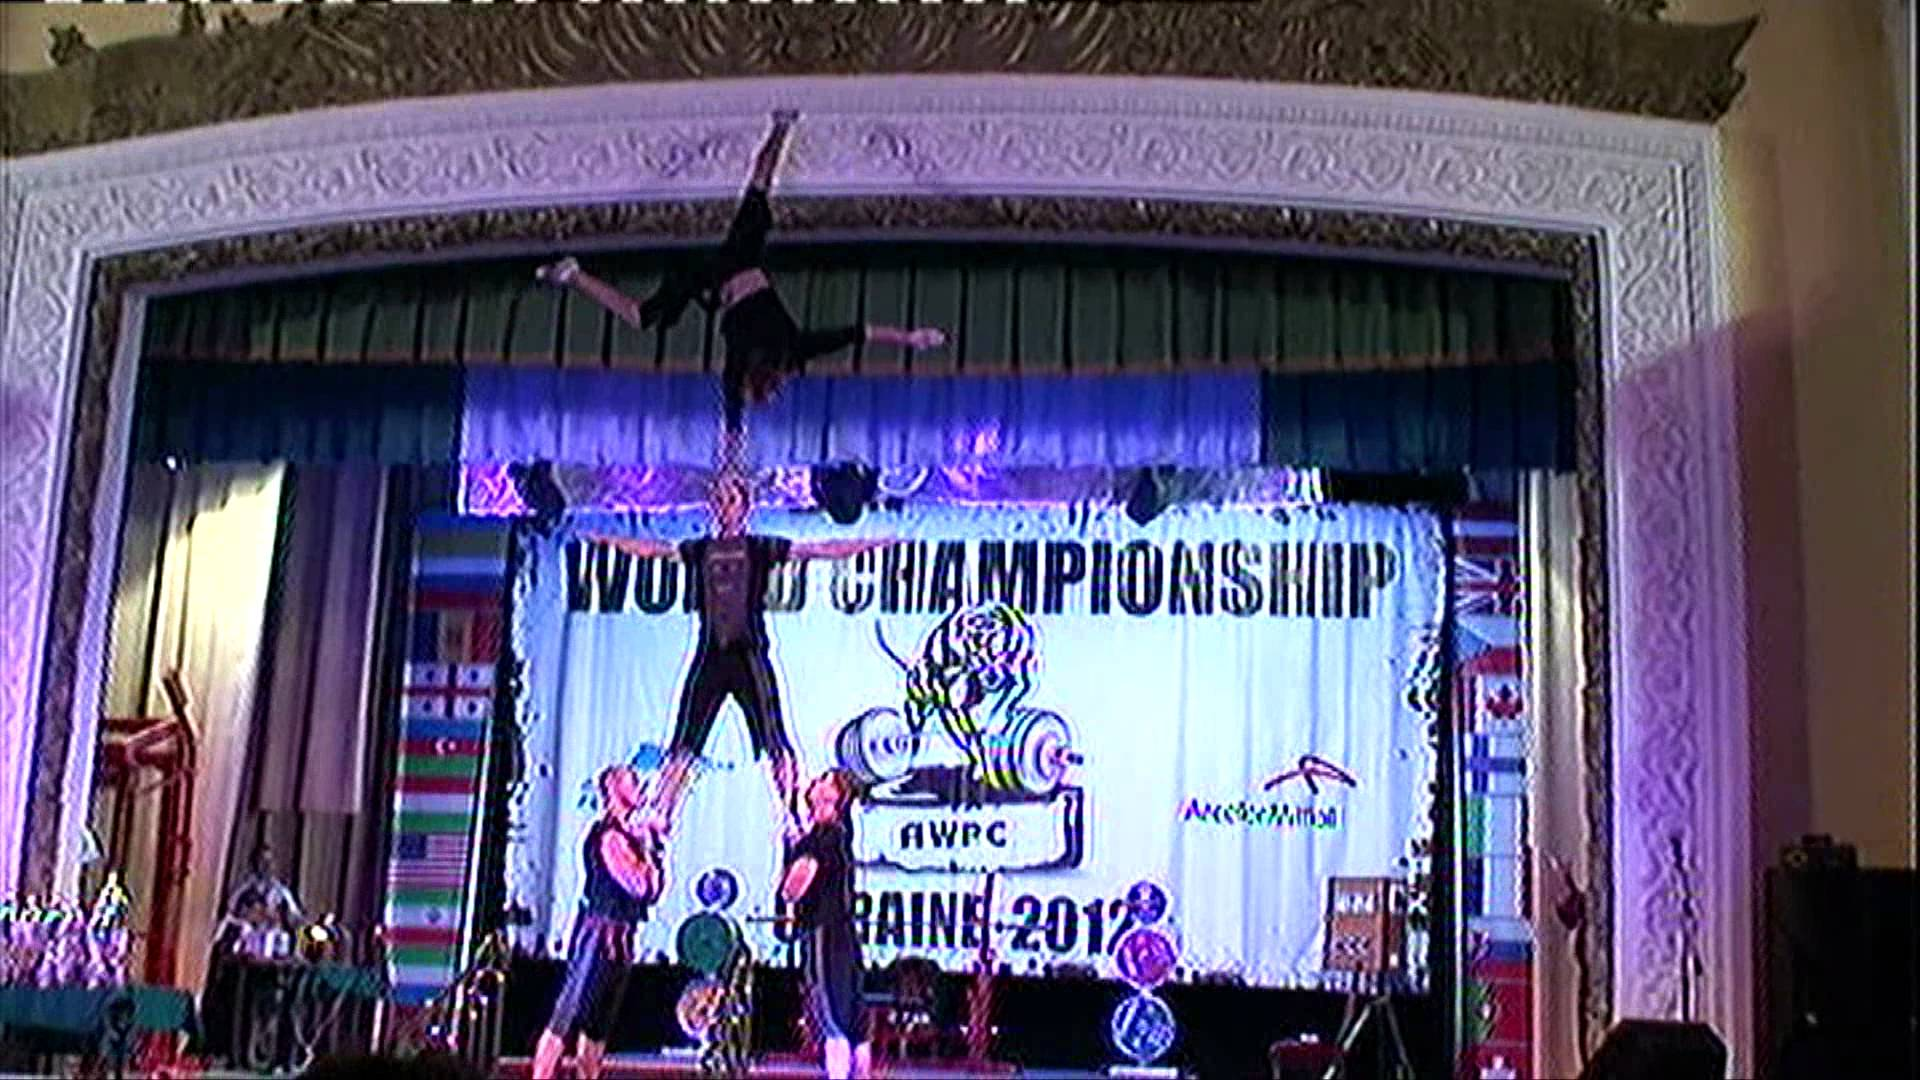 Пауэрлифтинг-Чемпионат Мира -Powerlifting — World Cup 2012 AWPC